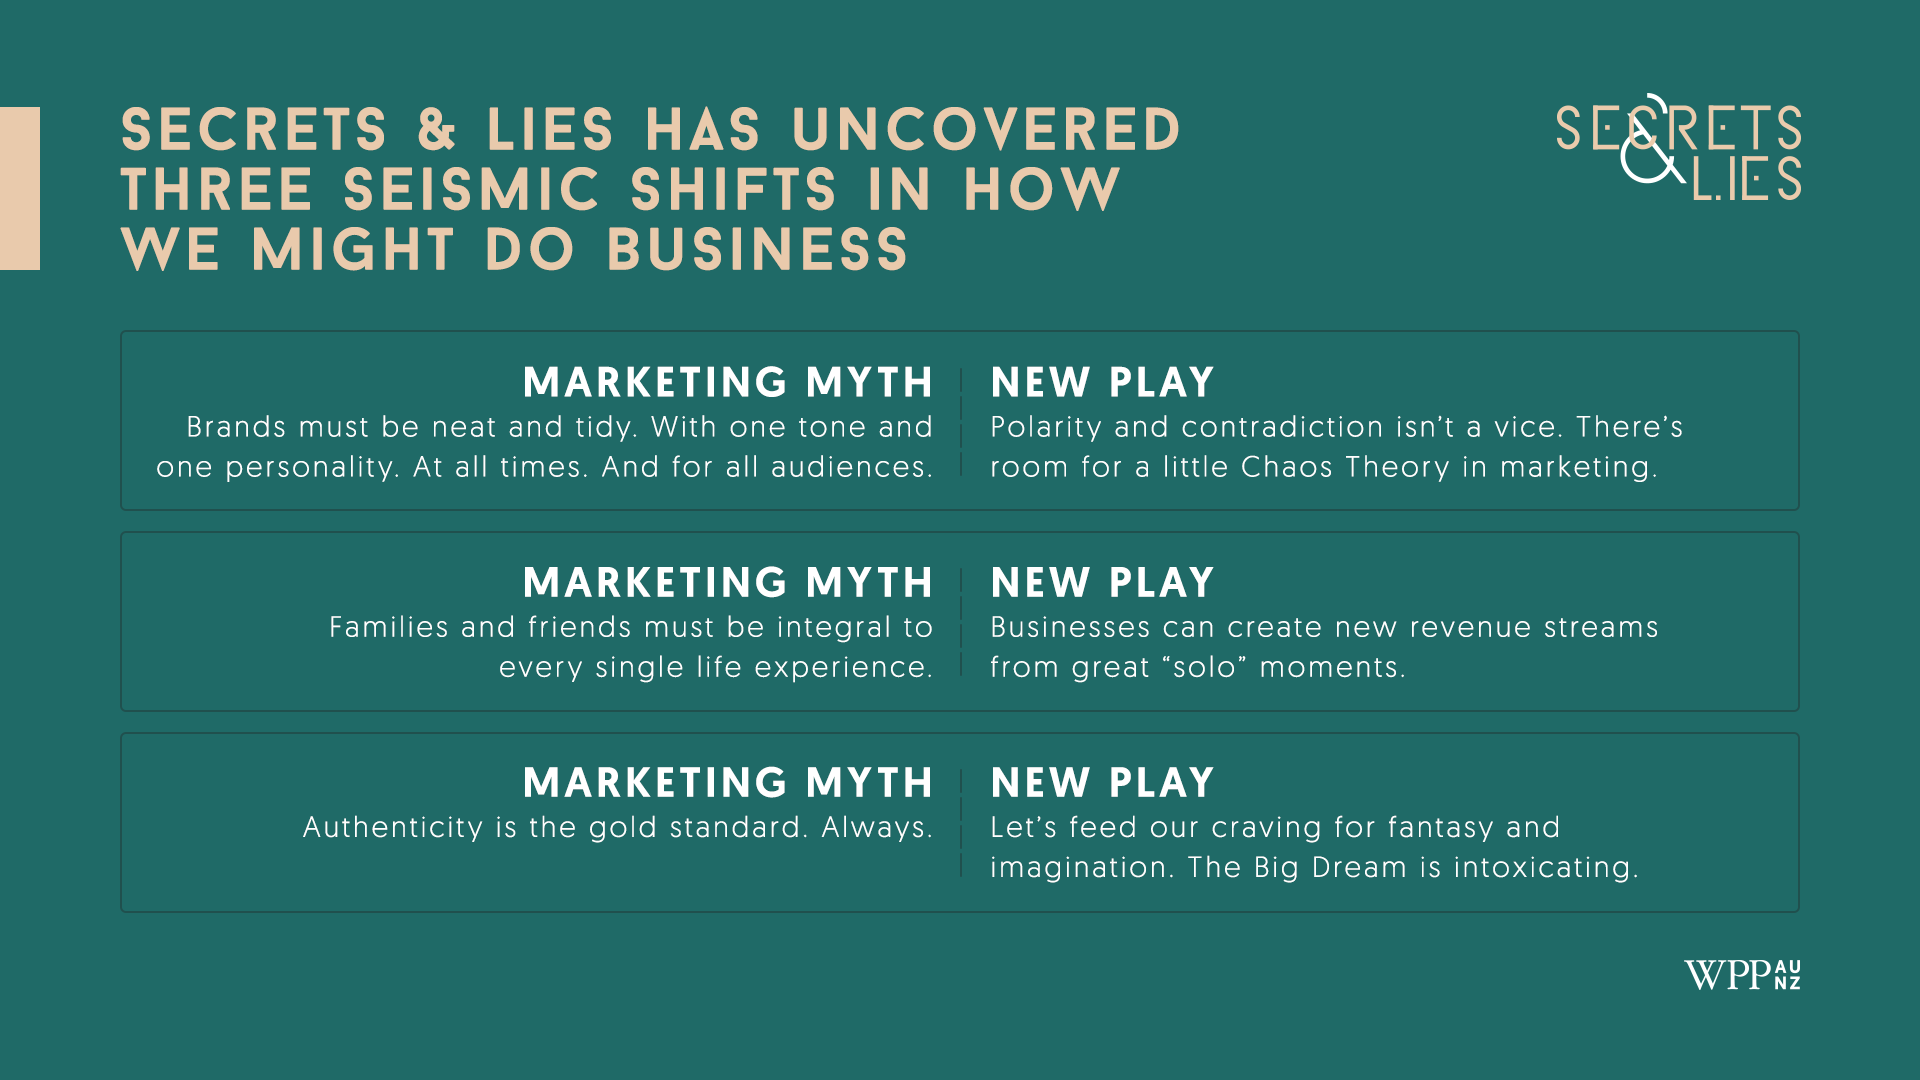 Marketing Myths & New Plays